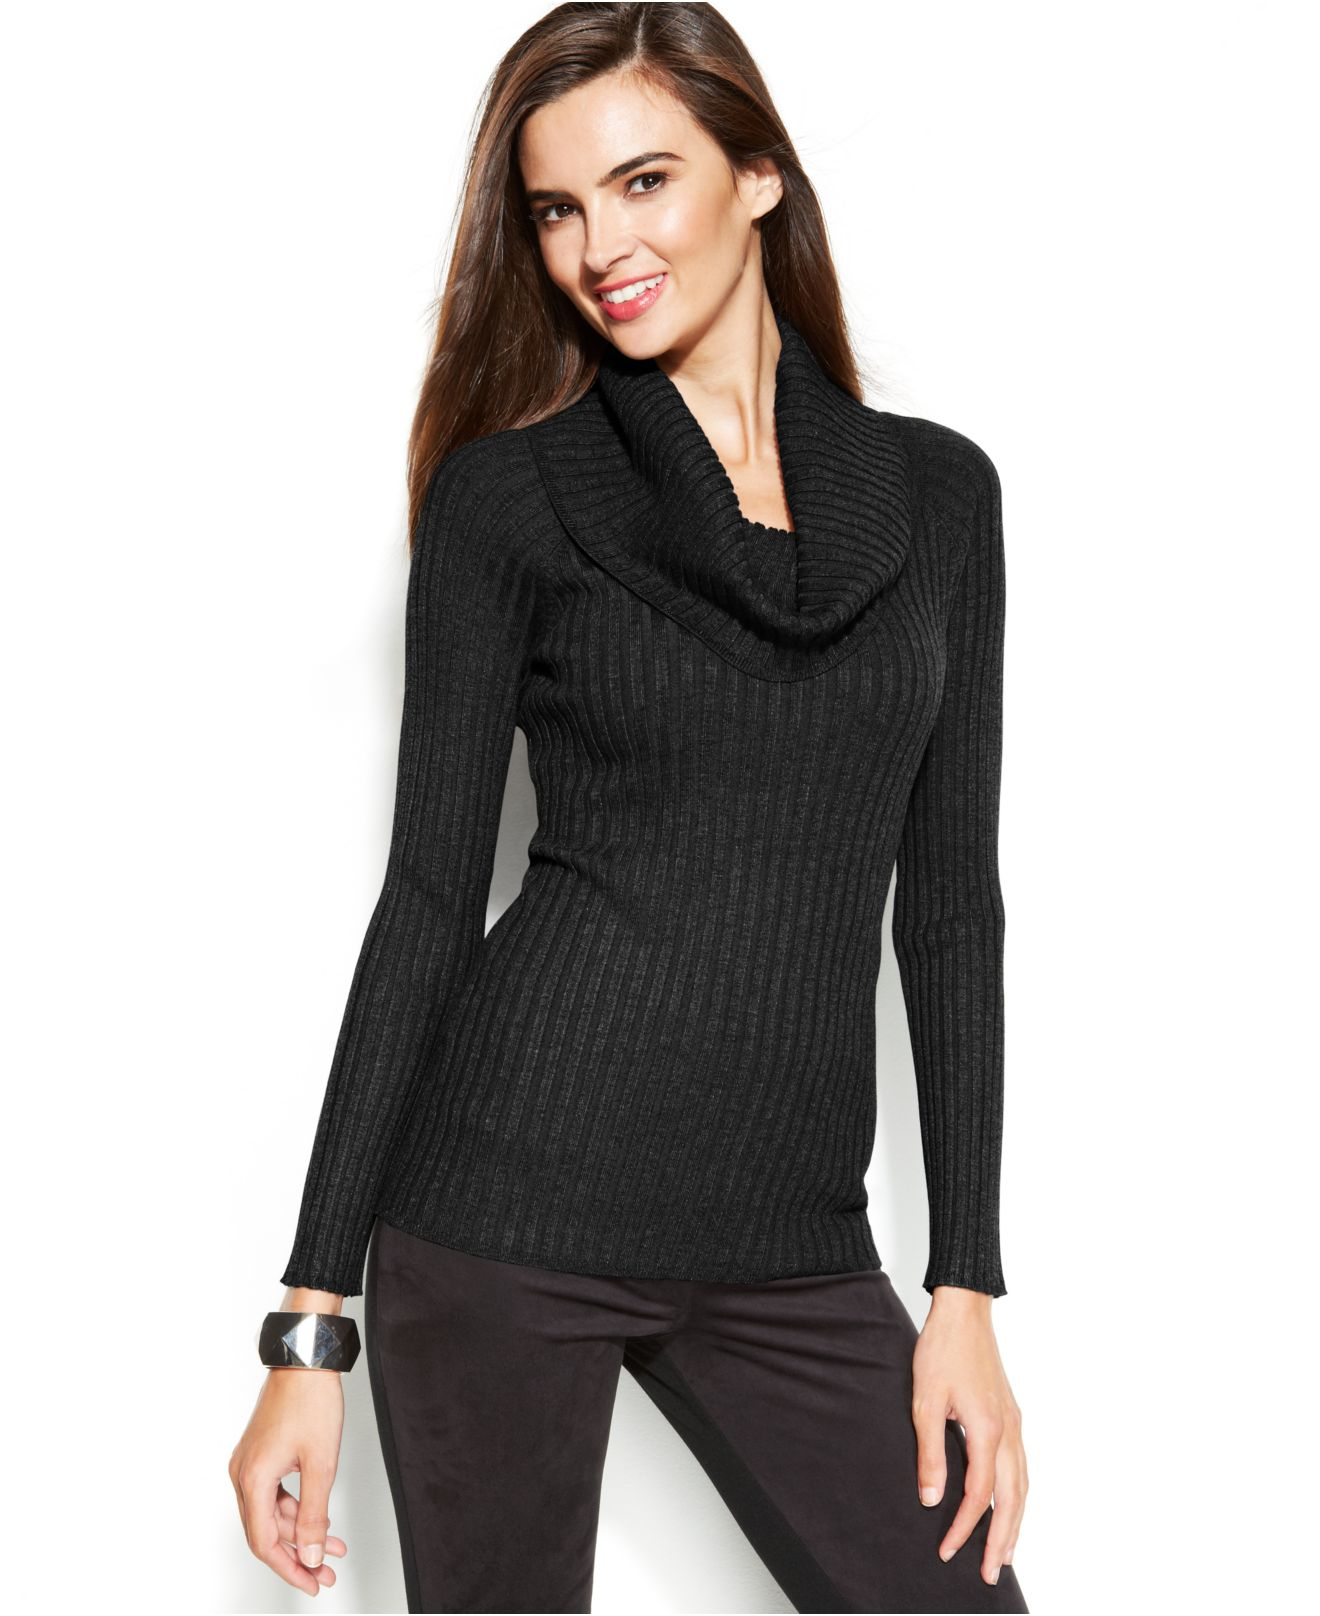 Inc international concepts Ribbed-Knit Cowl-Neck Sweater in Black ...